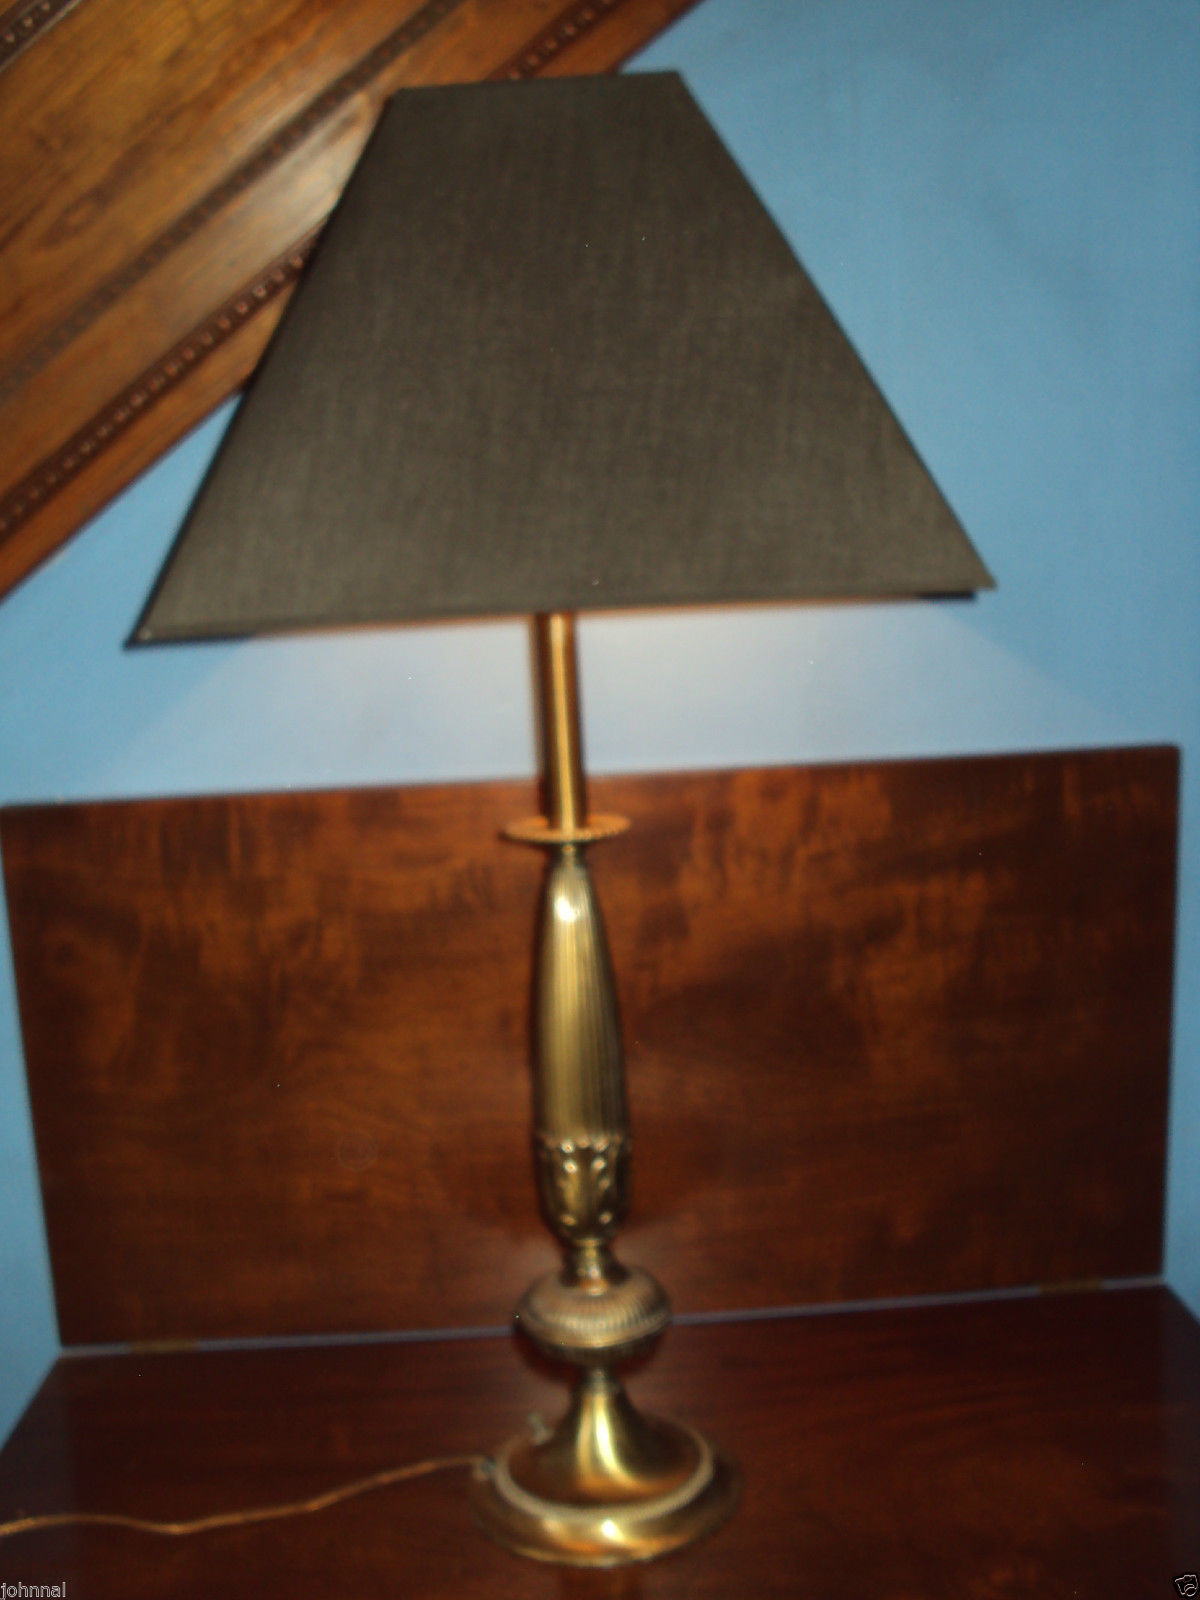 Brass REMBRANDT Table Lamp Light Elegant Vintage Mid Century stamped 1591 VG